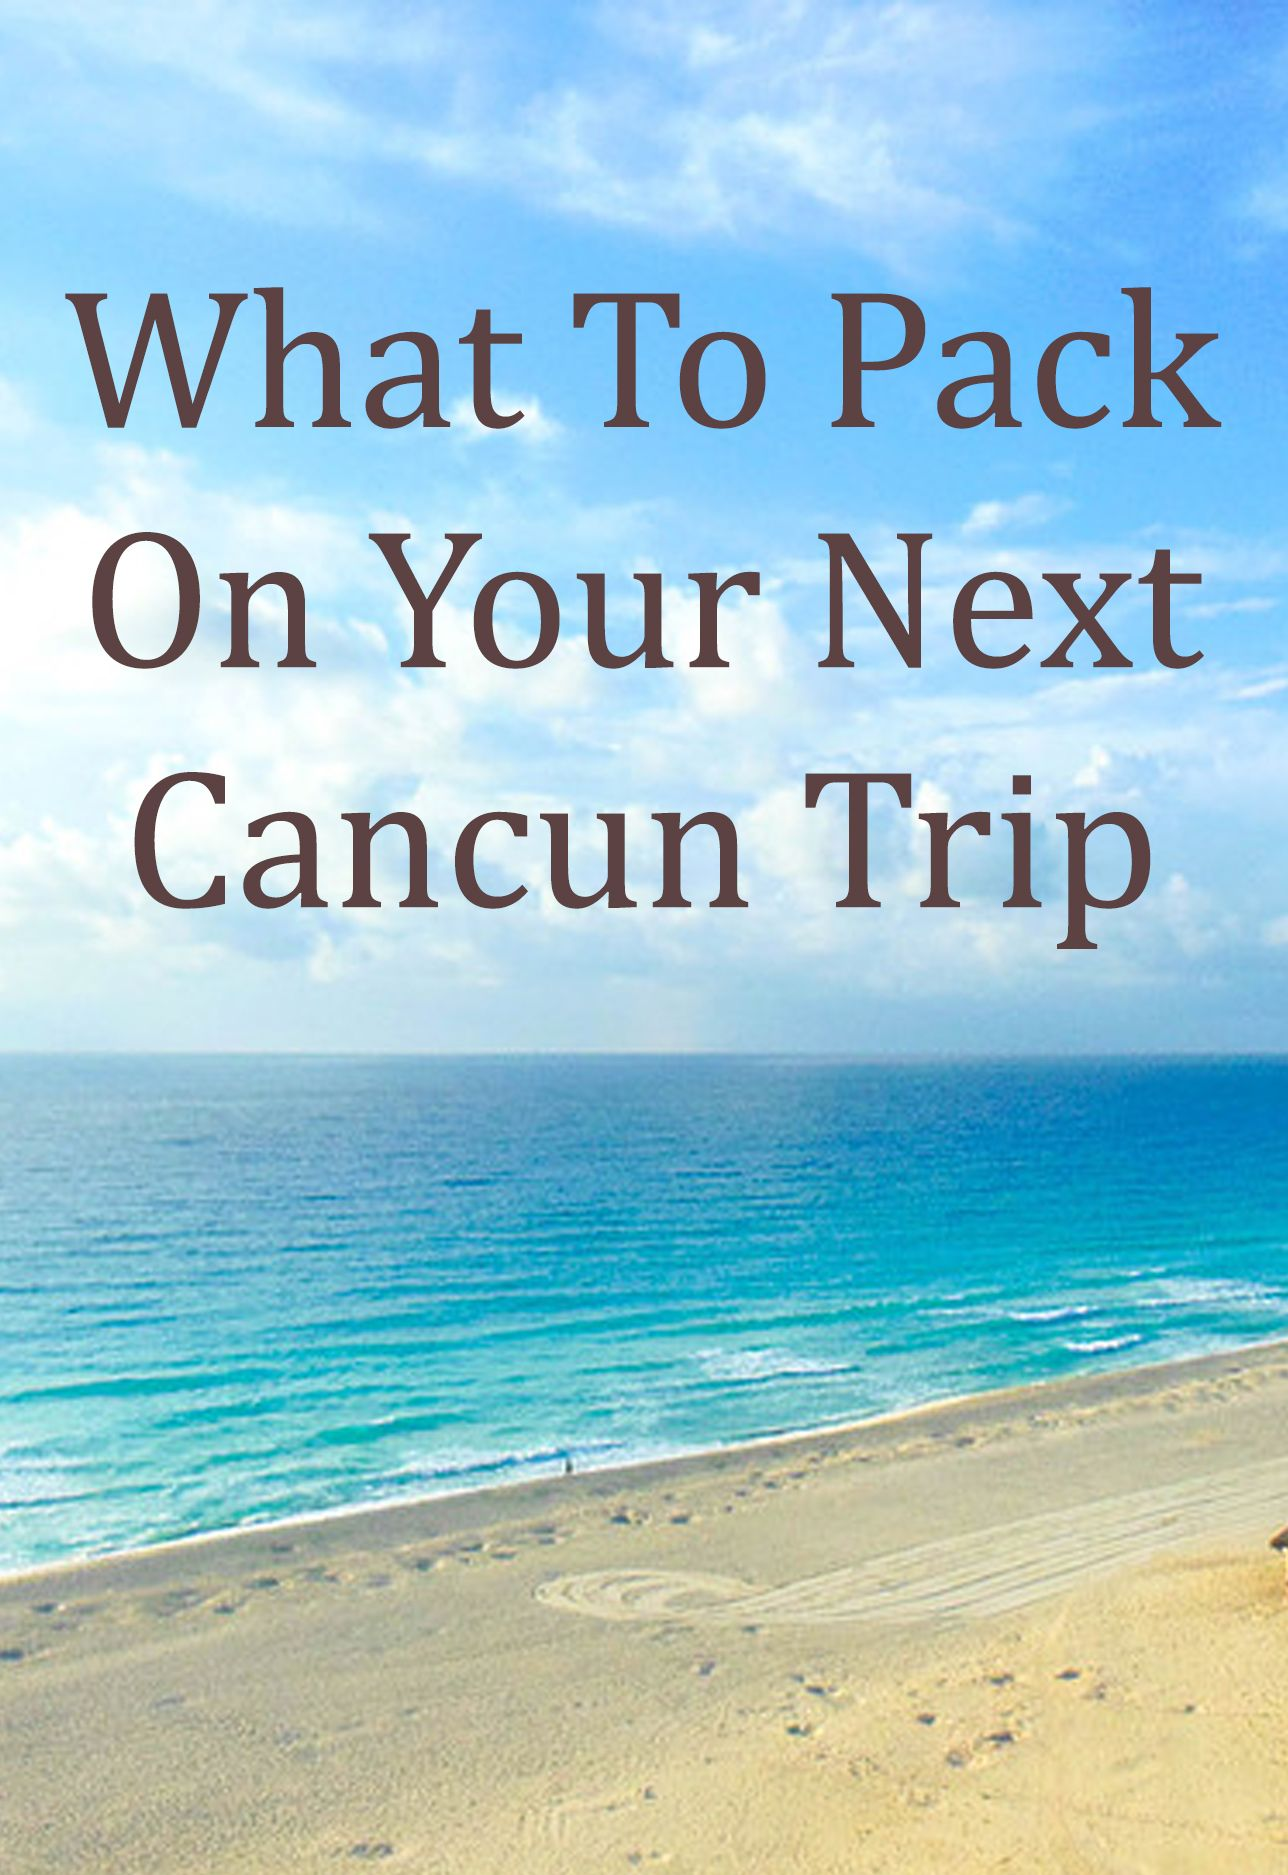 Cancun Trip Why Is Cancun So Beautiful And What Should You Pack On Your Next